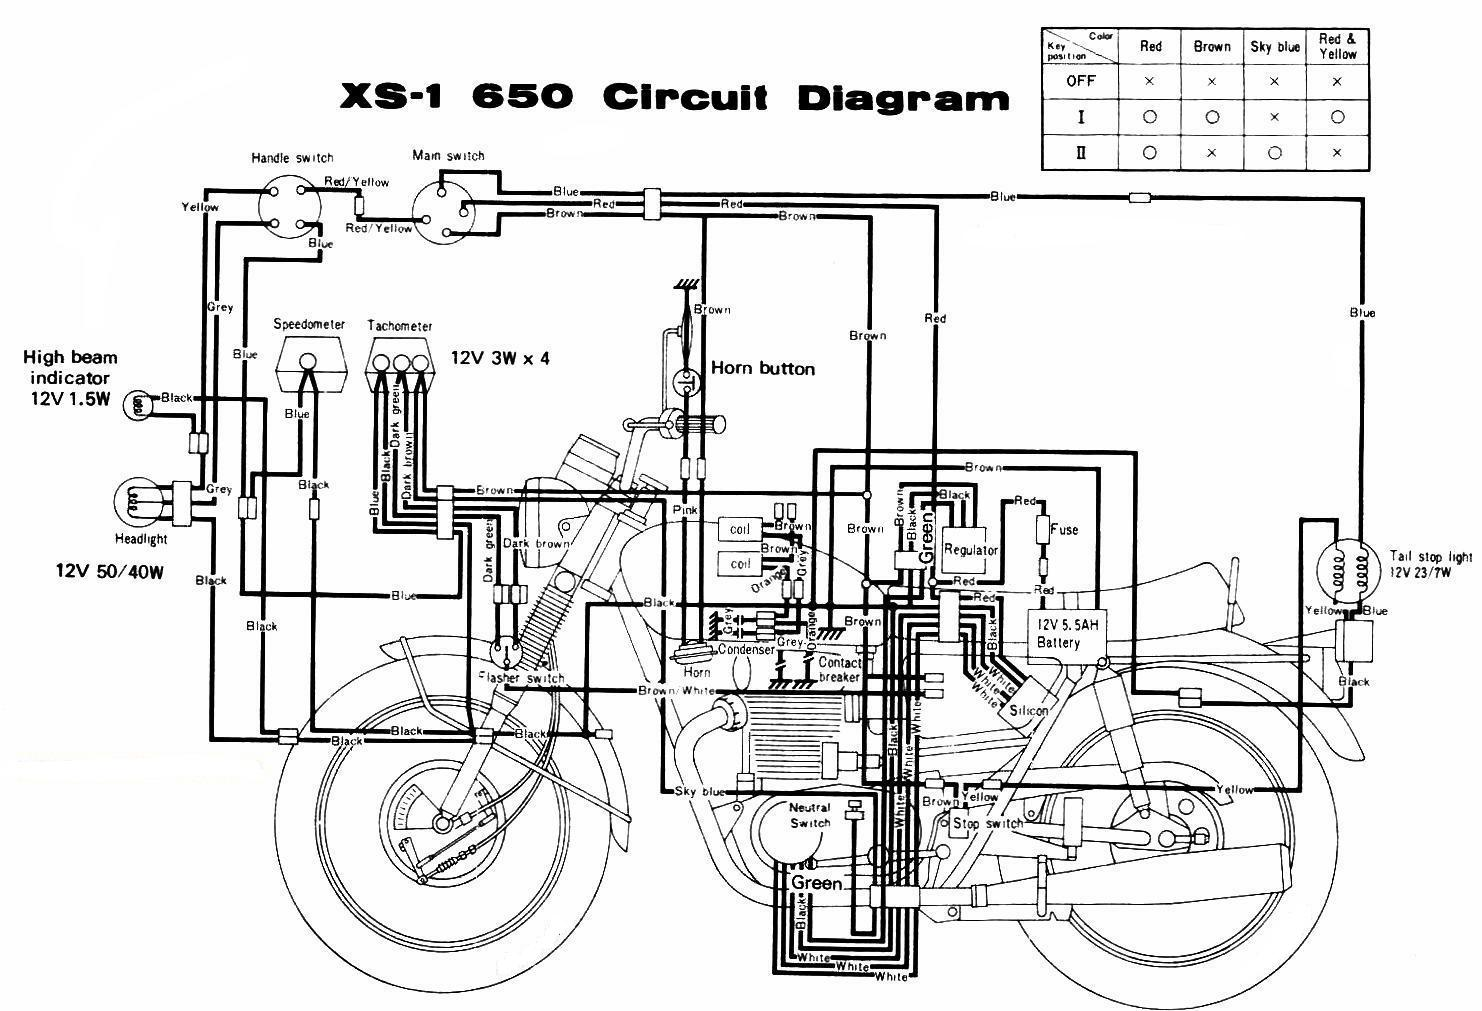 Honda Cb250 Wiring Harness Diagram Diagrams 1970 Xs1 Page 1